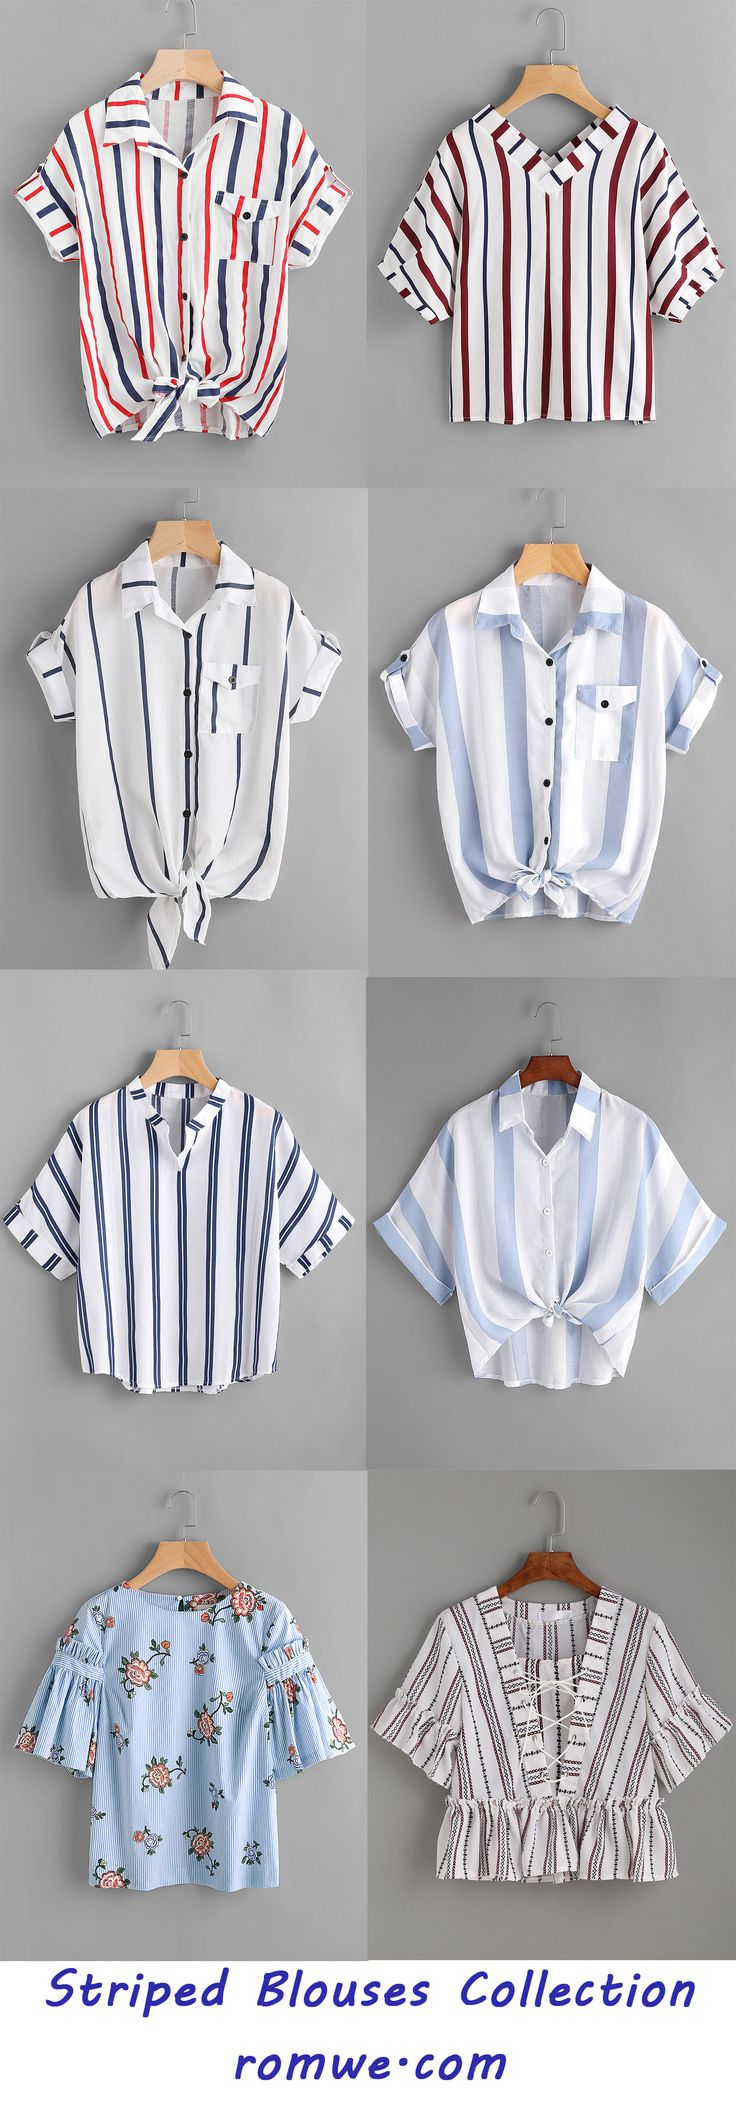 Striped Blouses Collection - romwe.com